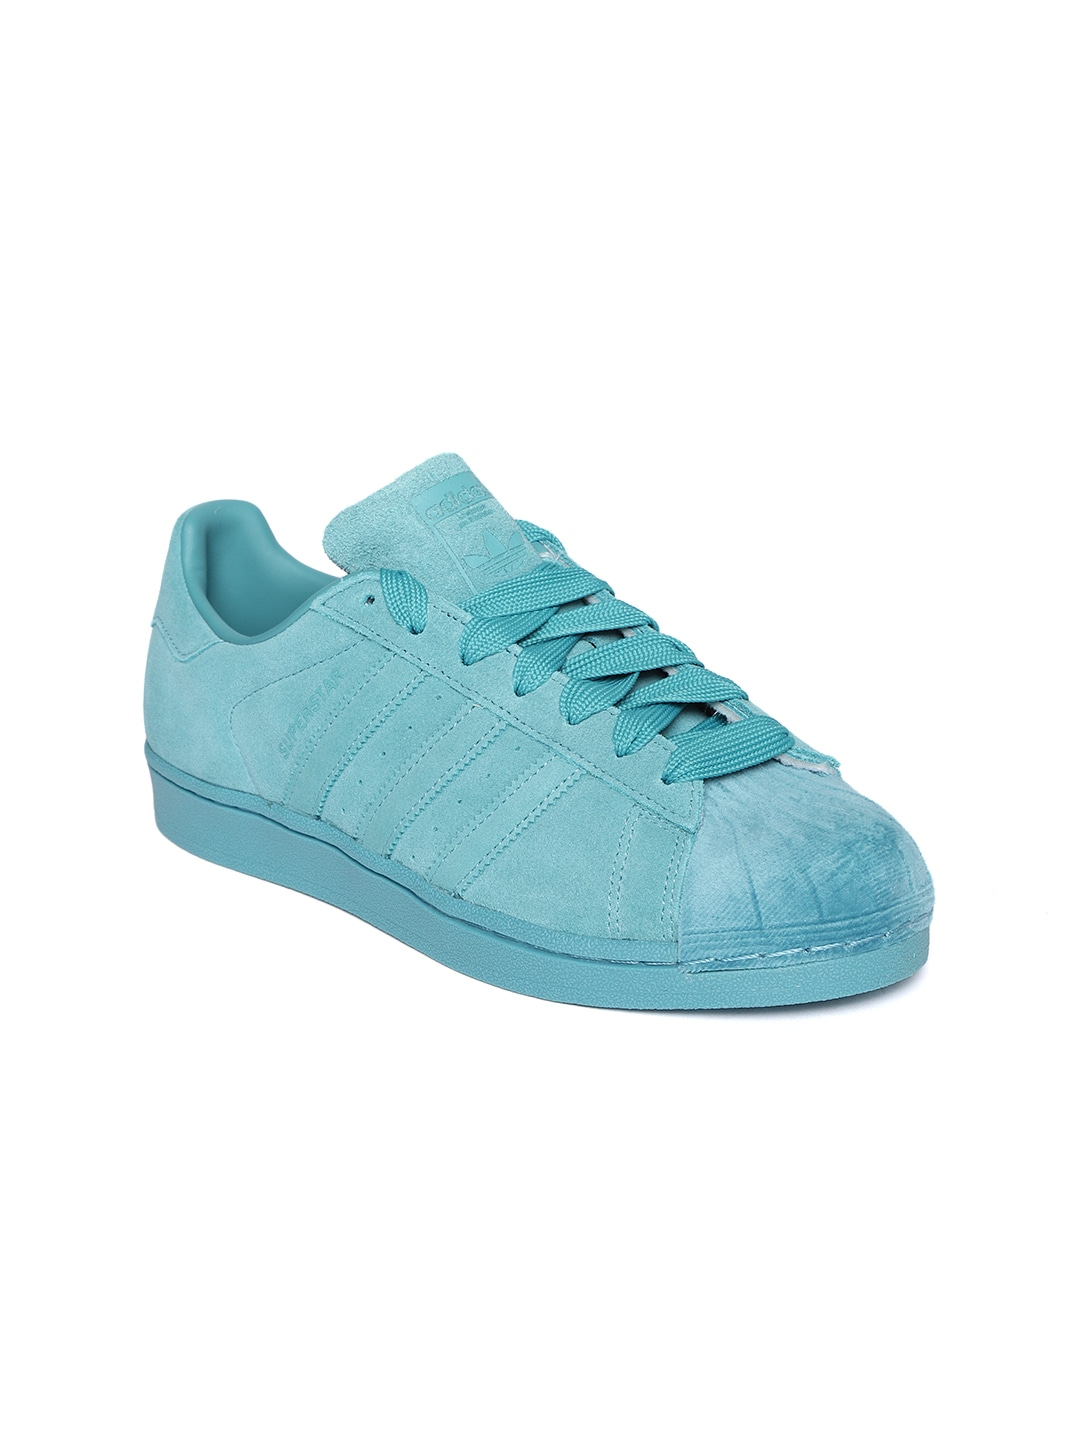 c8db66f1e032 Casual Shoes For Women - Buy Women s Casual Shoes Online from Myntra